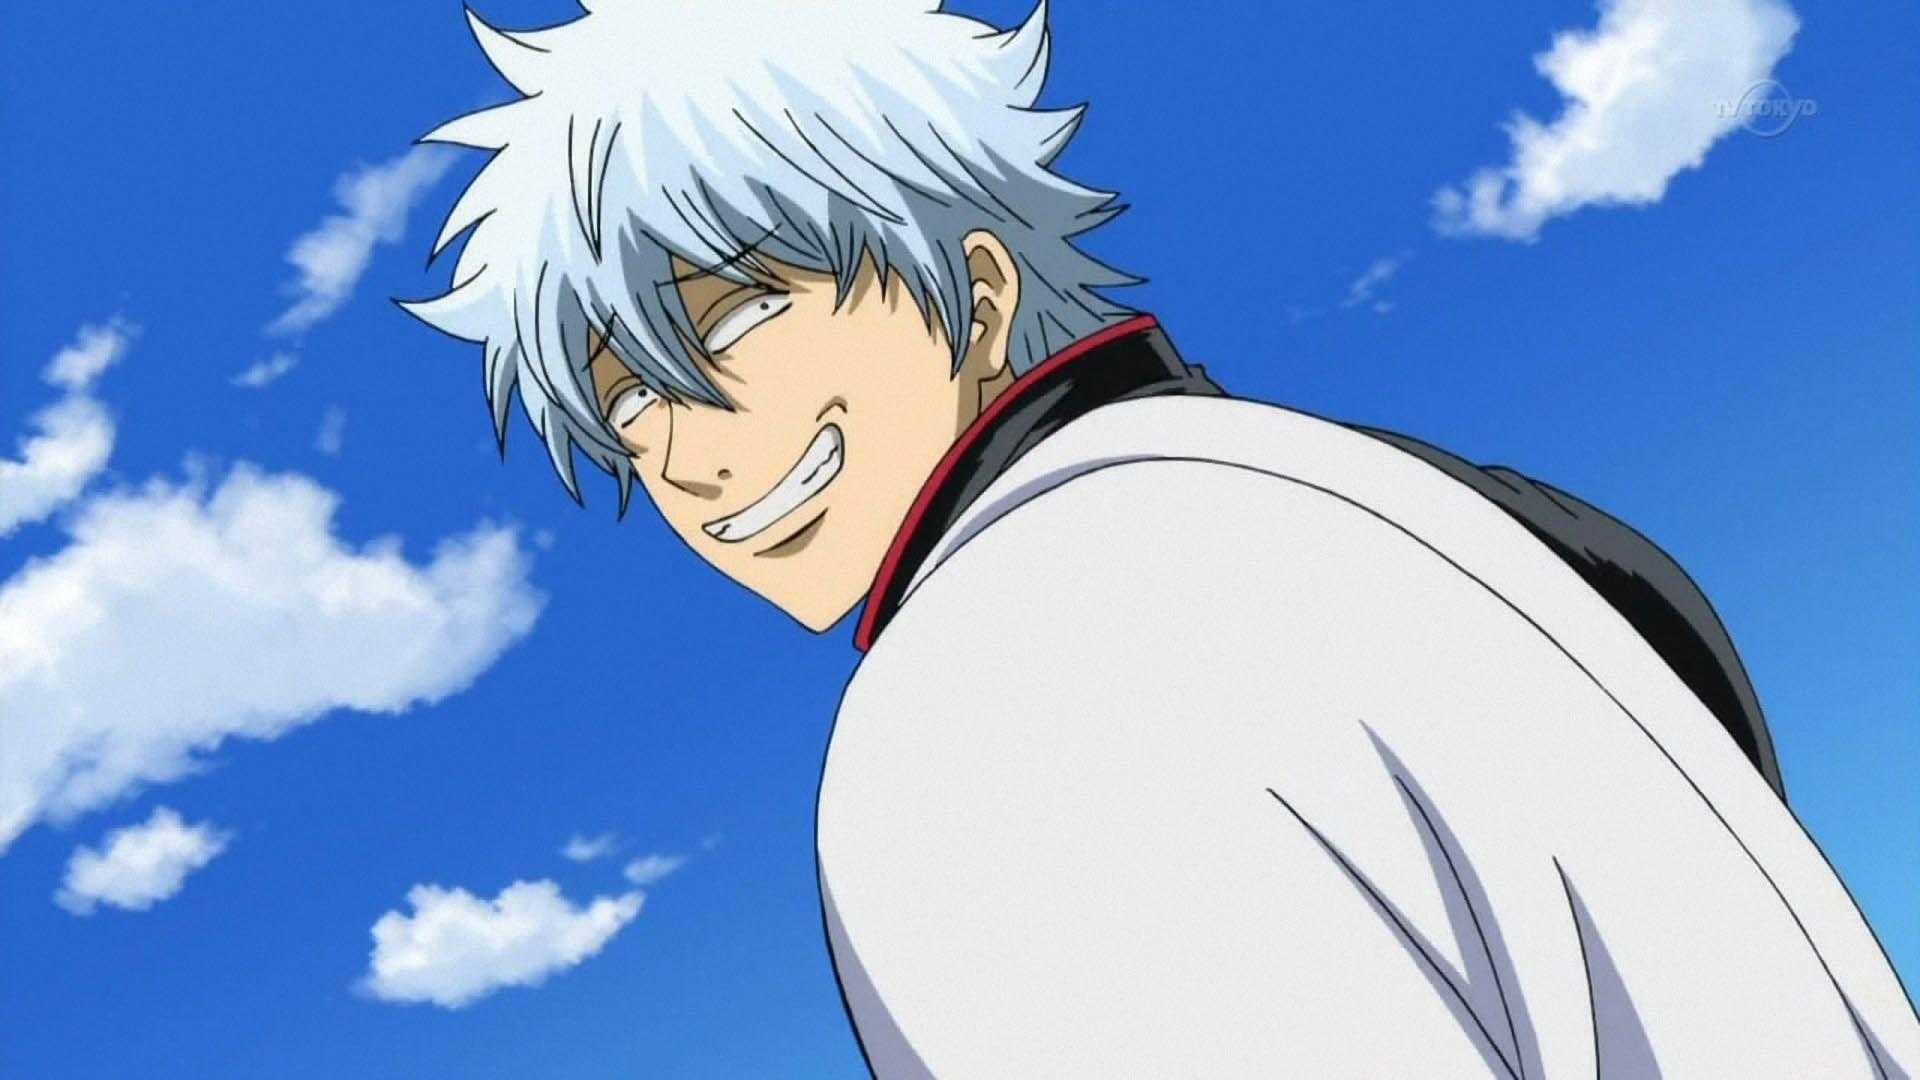 High Res Gintoki Wallpapers Alex Peled 23/06/2015